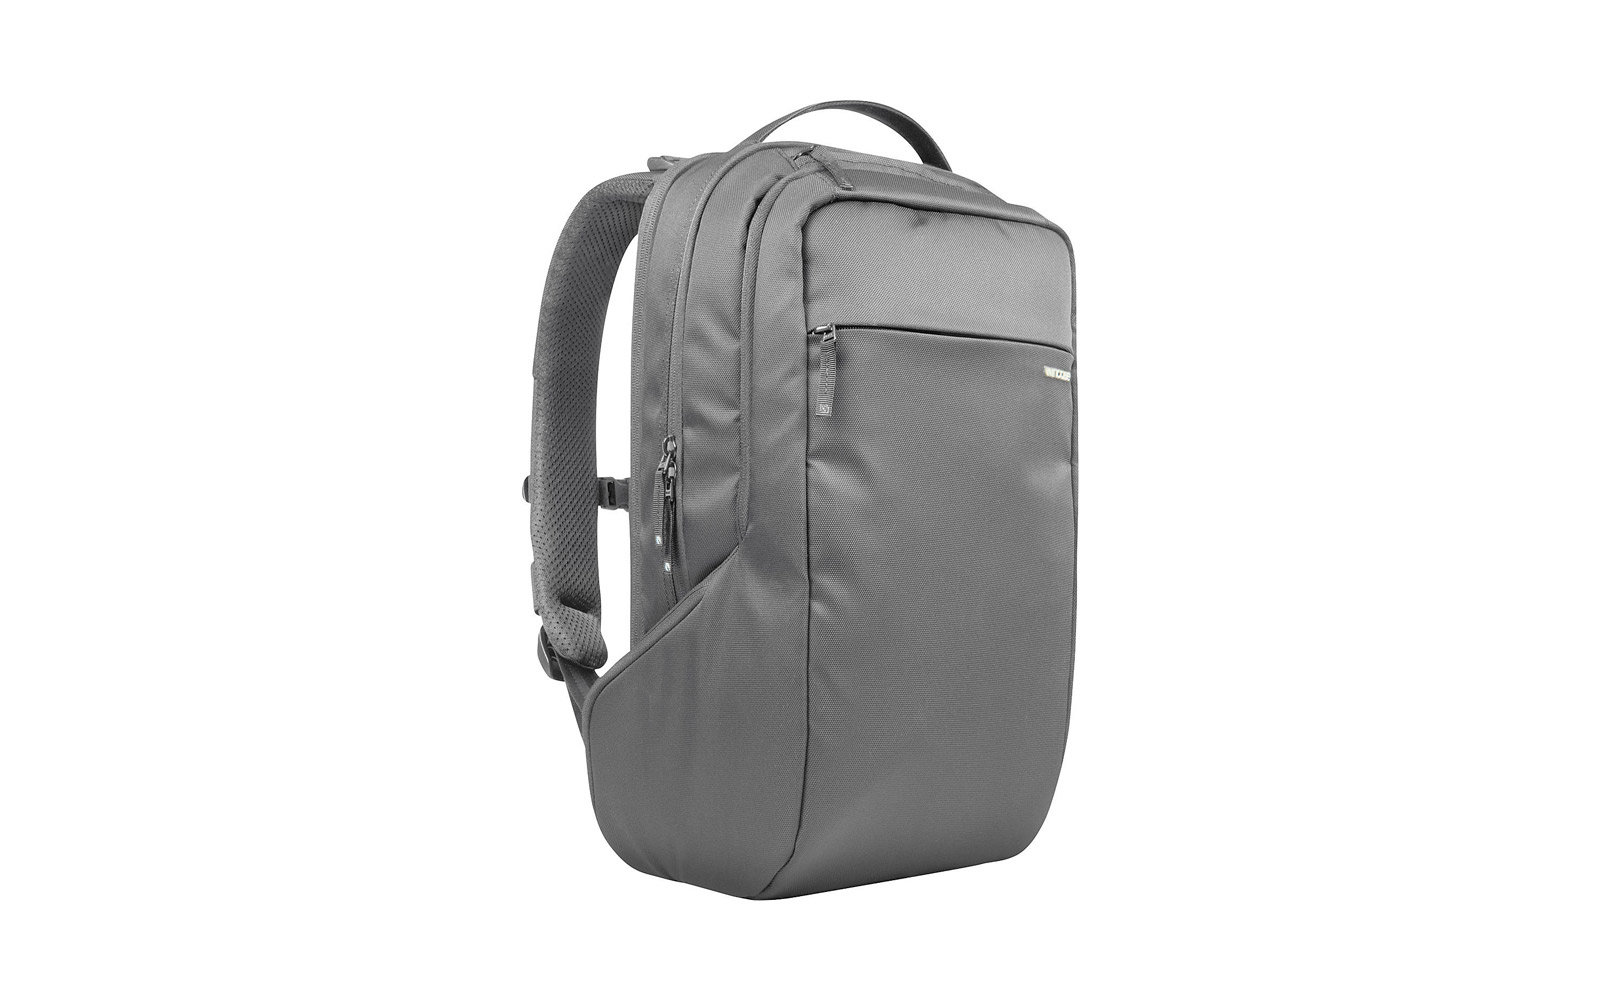 The Best Laptop Backpacks for Travel 29a3bc9a4b3fb